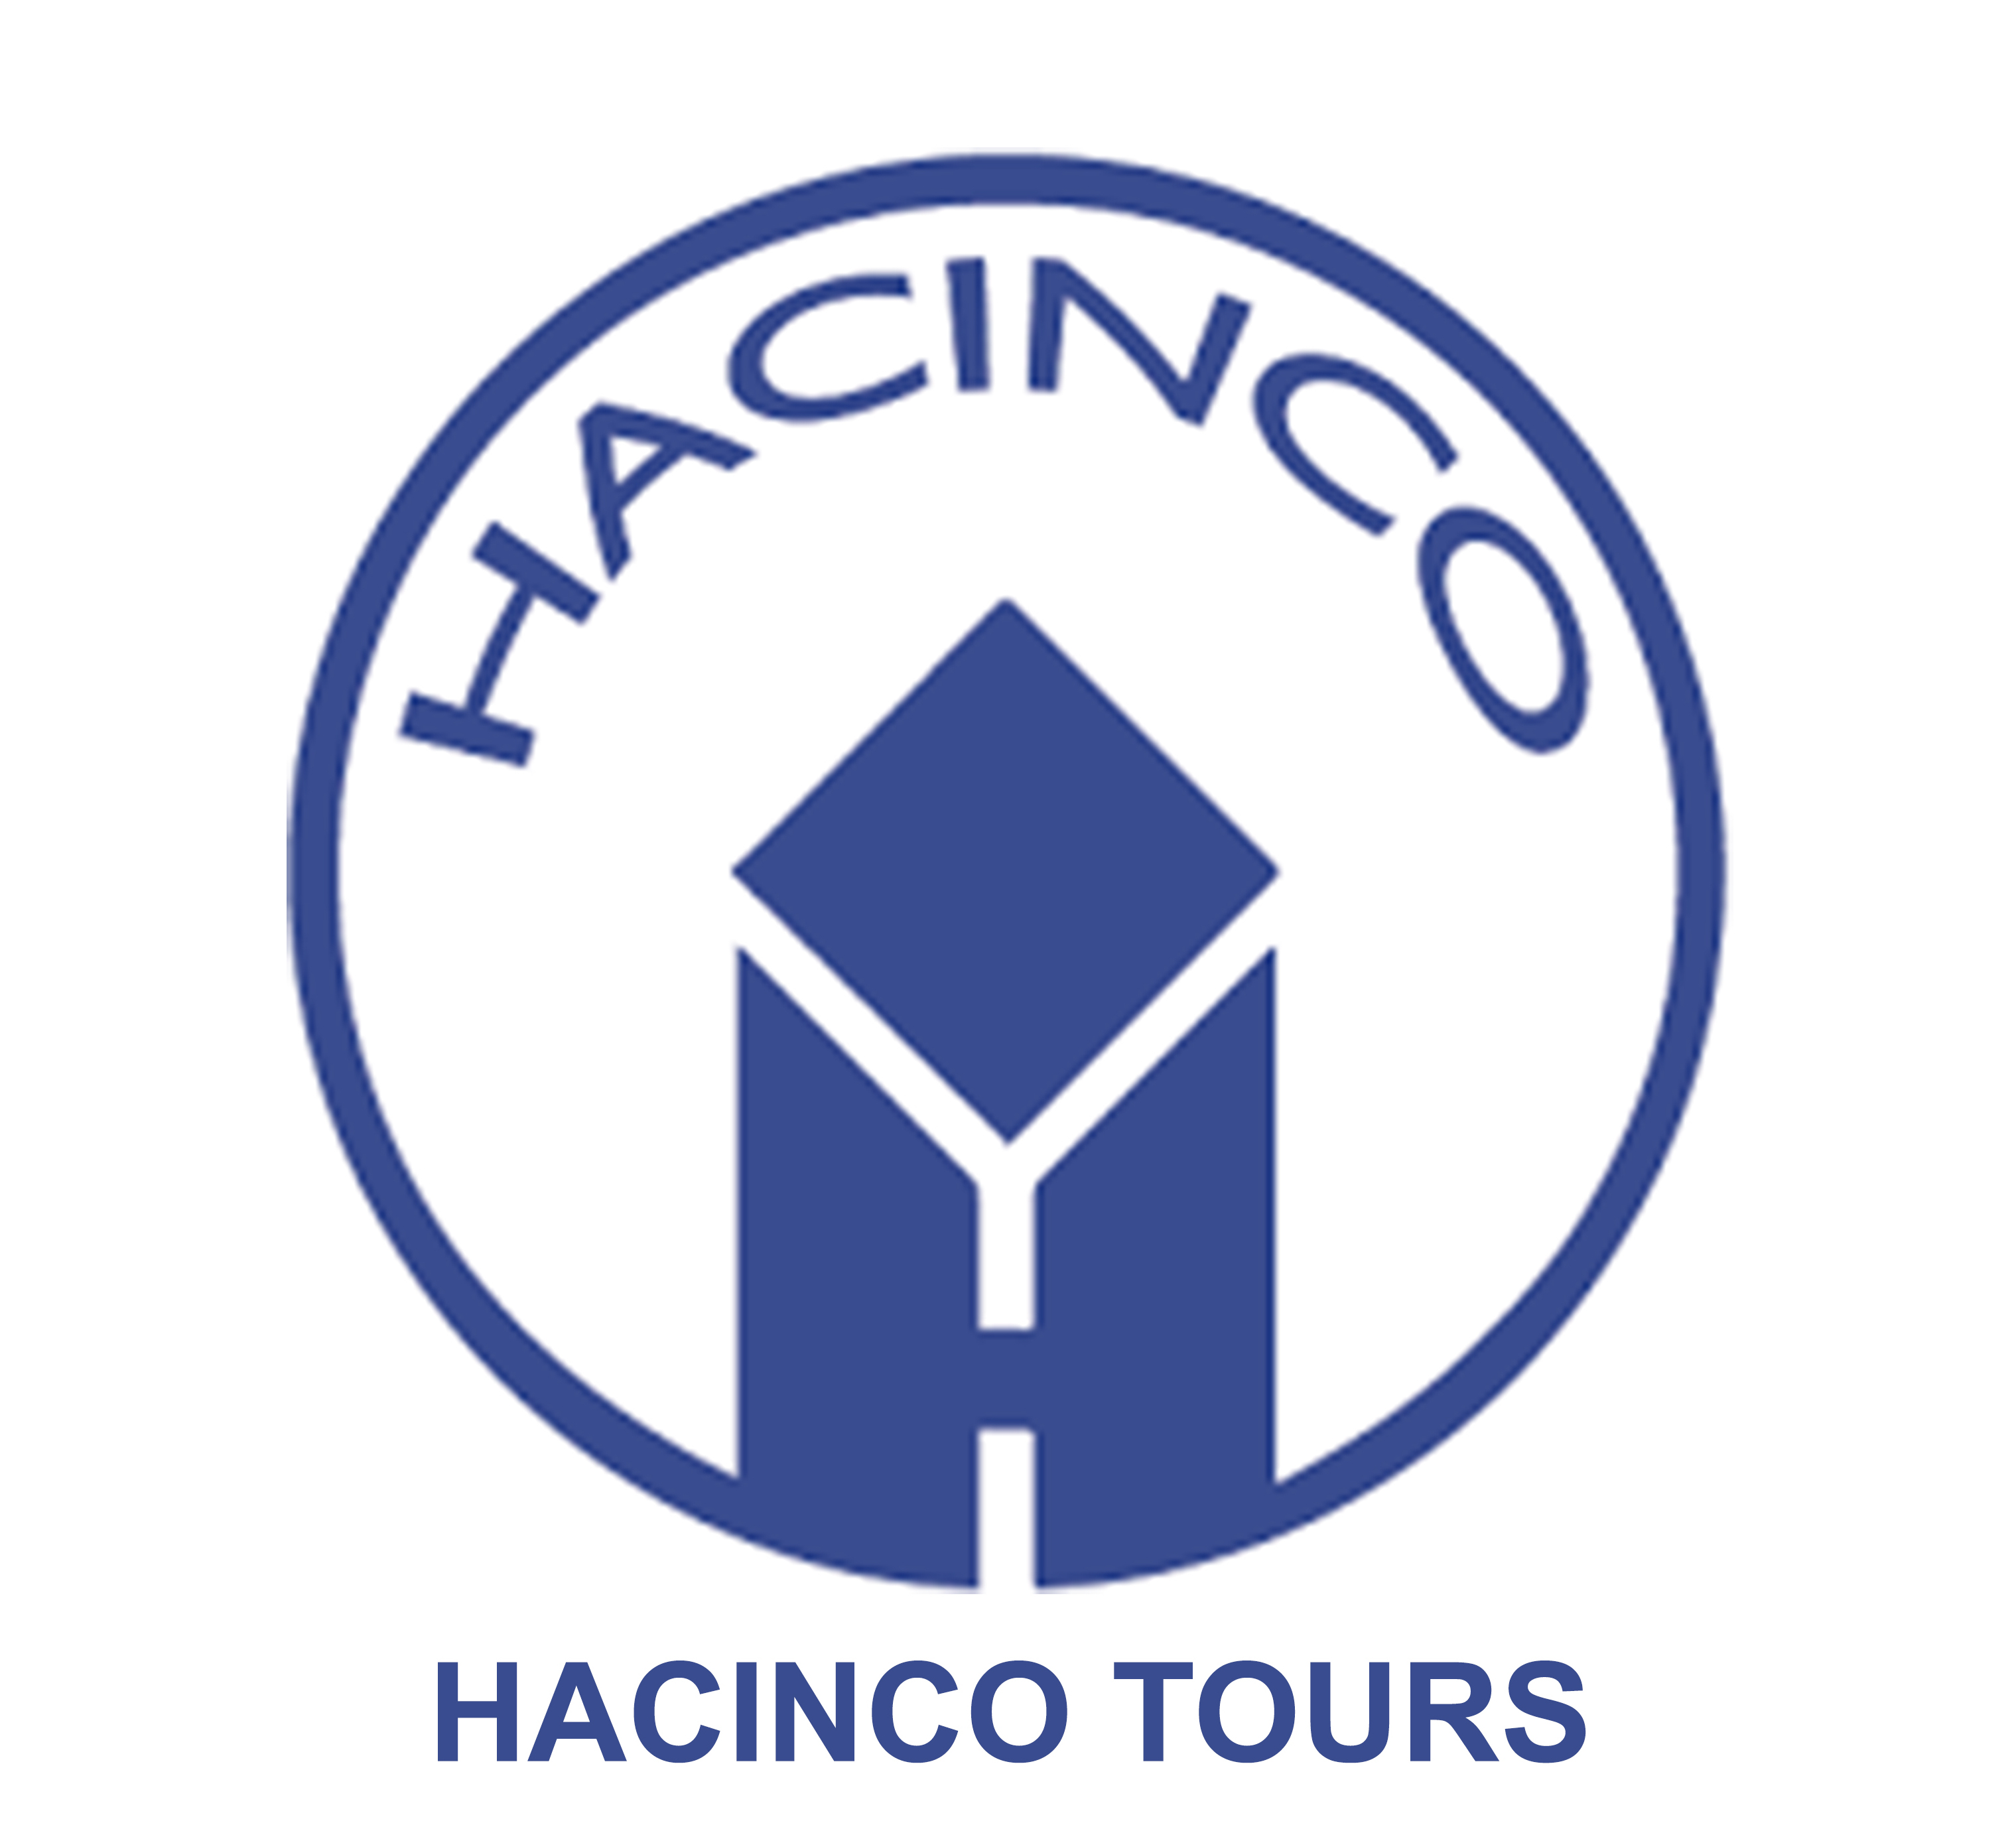 Hacinco tour